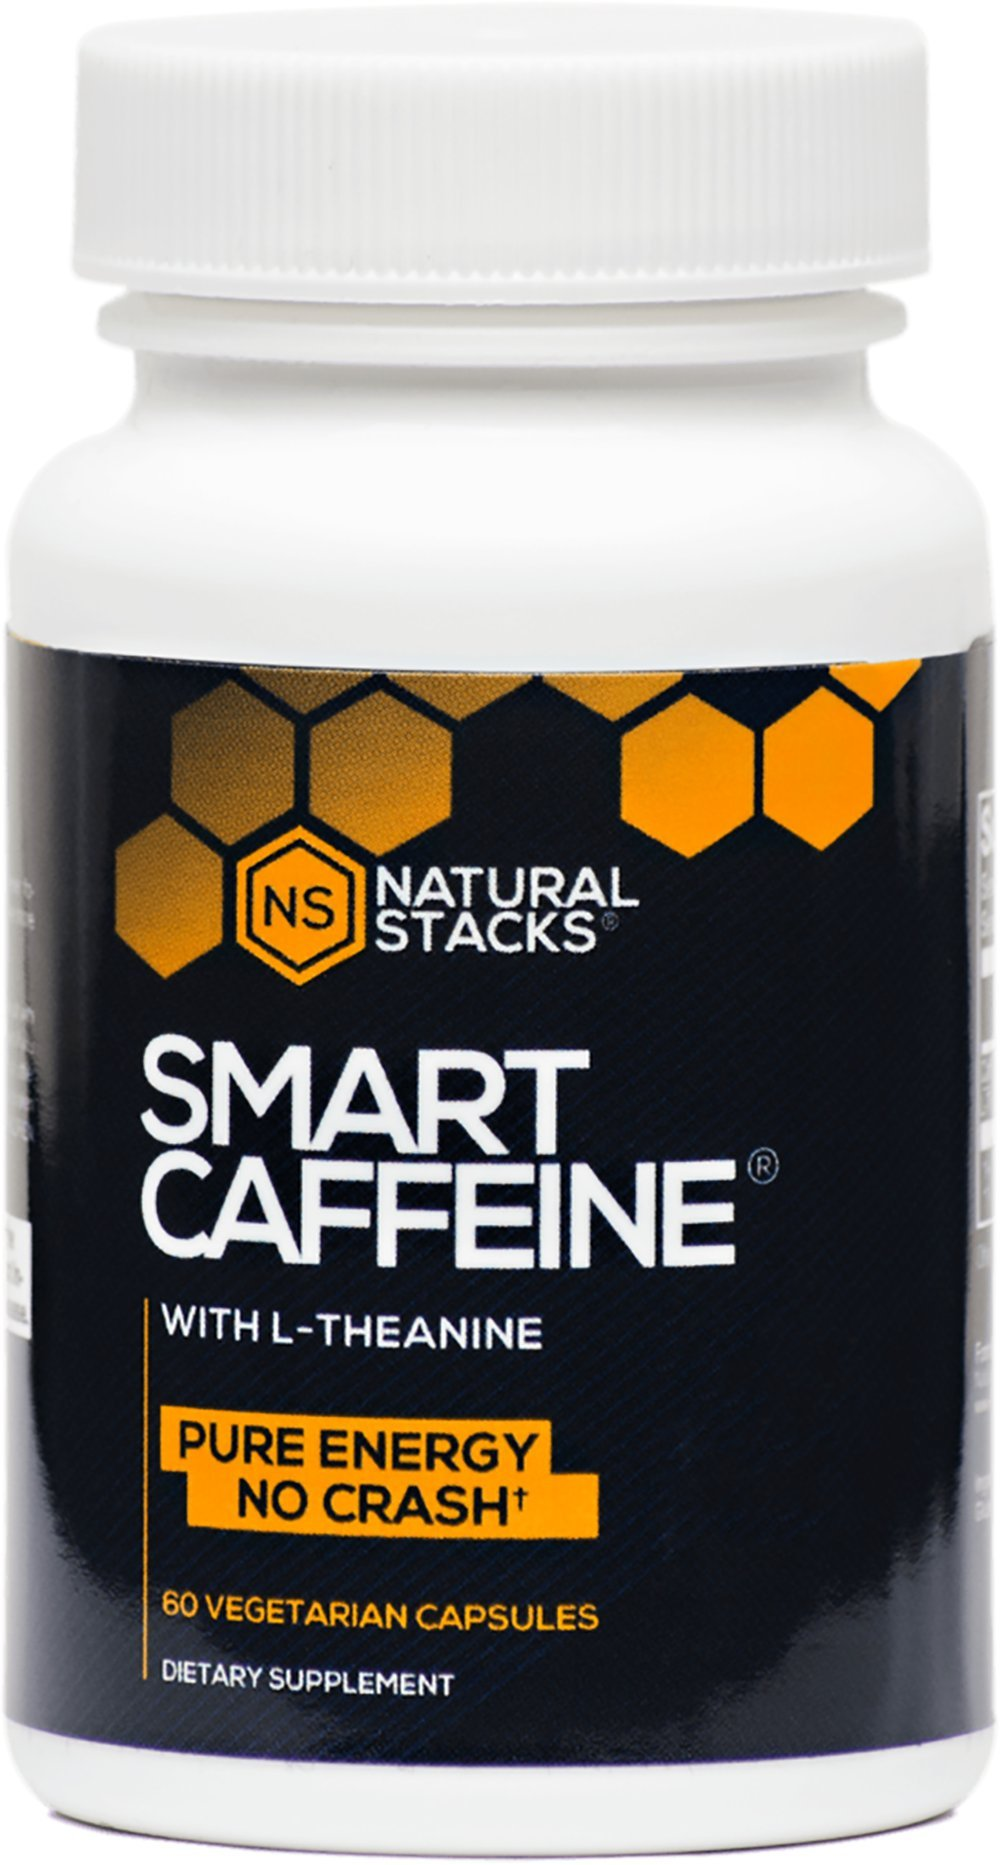 Natural Stacks Smart Caffeine - Energy Supplement - Single Bottle Contains 60 Capsules - Creates Long-Lasting Energy, Prevents Caffeine Crashes, Increases Alertness and Productivity